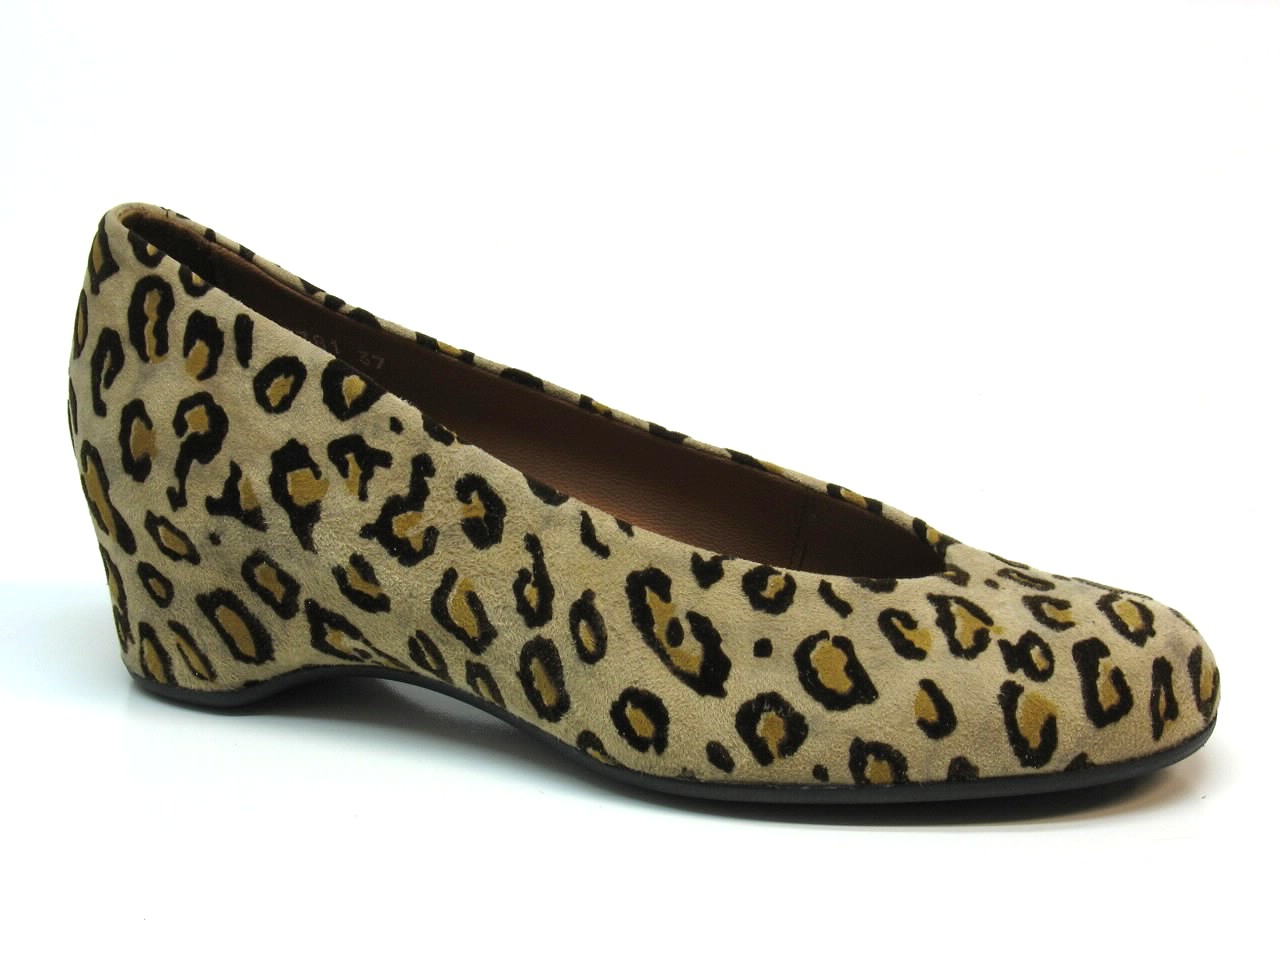 Wedge Shoes Pons Quintana - 2057657.023